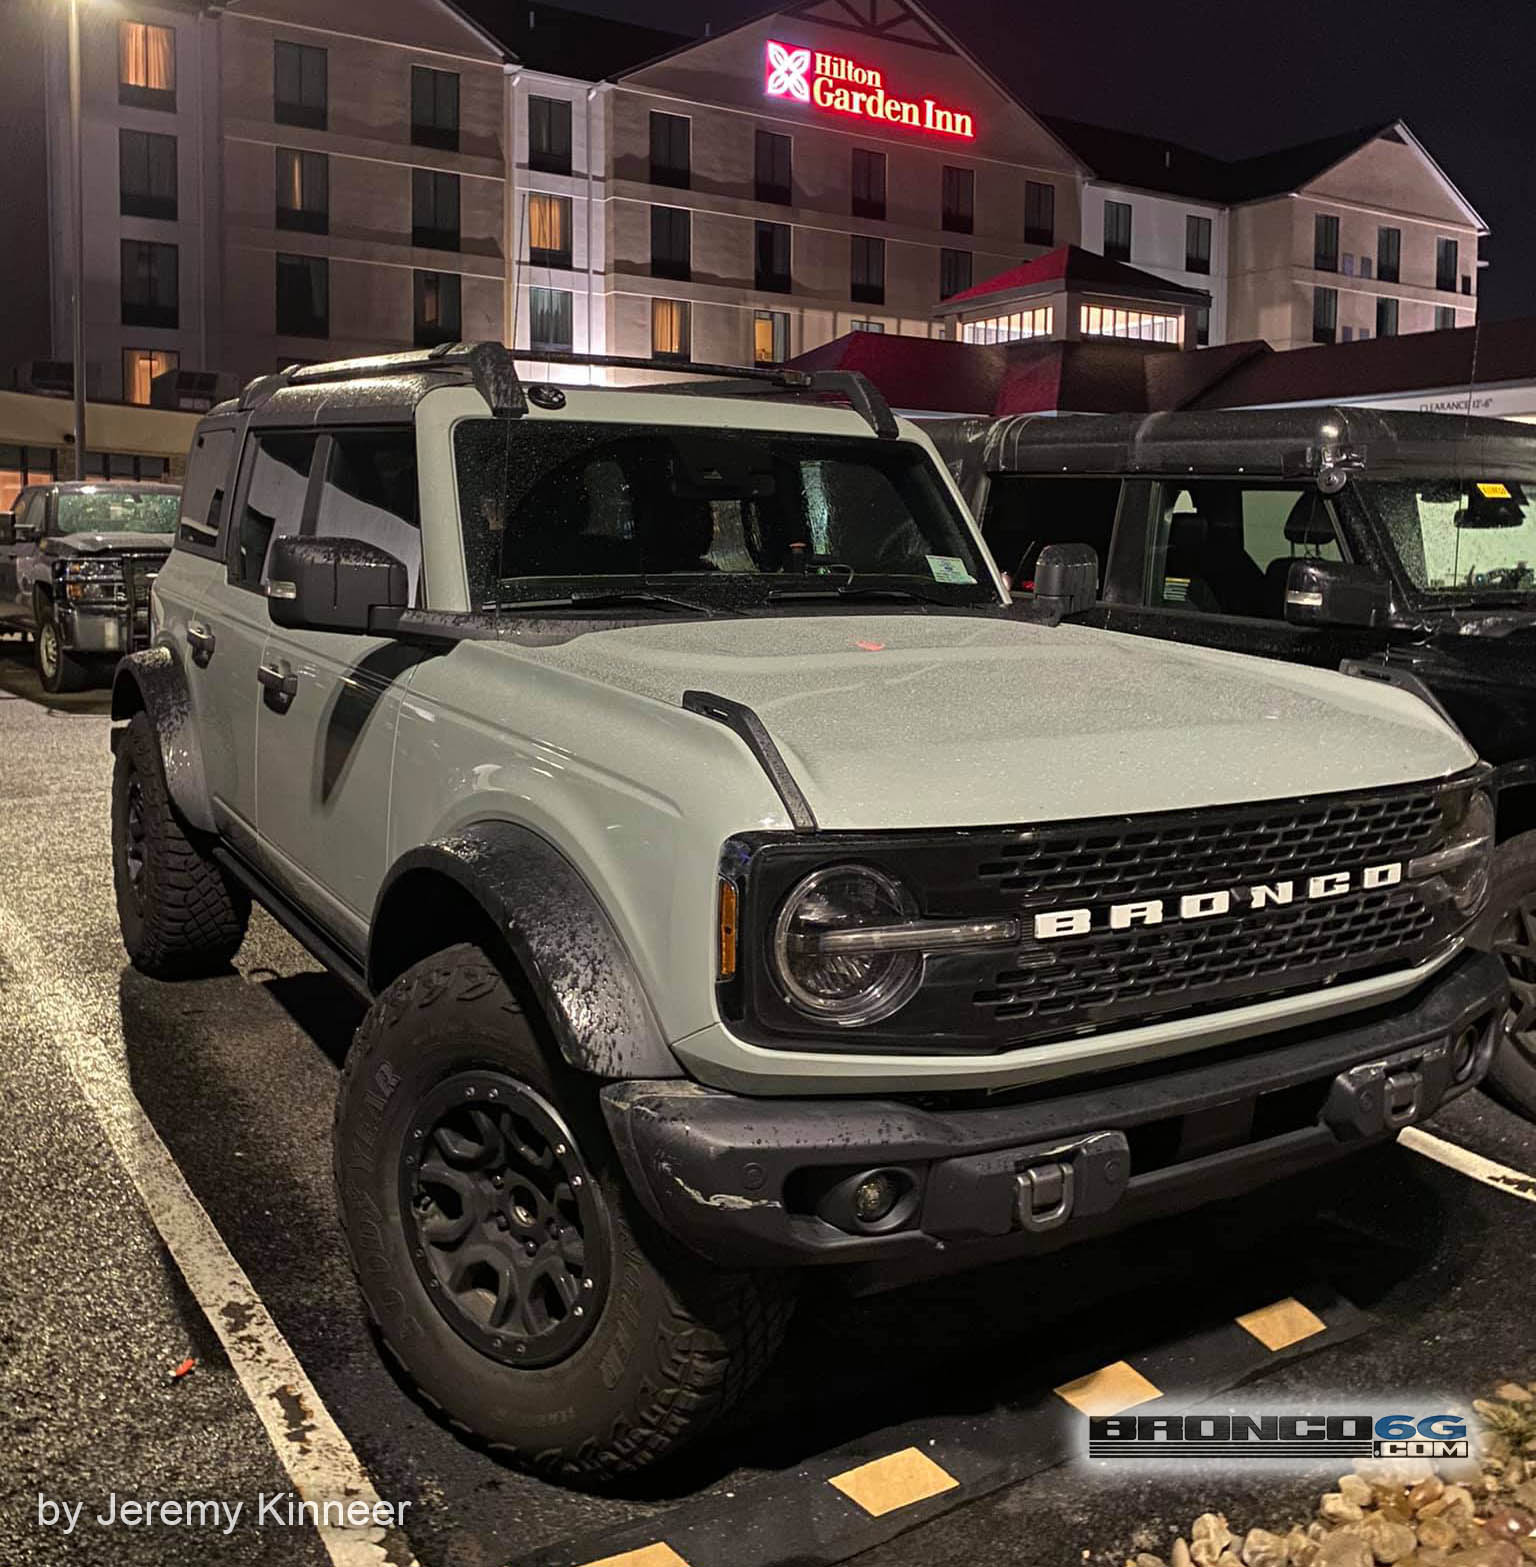 2021 Bronco Badlands Sasquatch Cactus Gray 118286310_2699625920286772_3748969195224342265_o.jpg